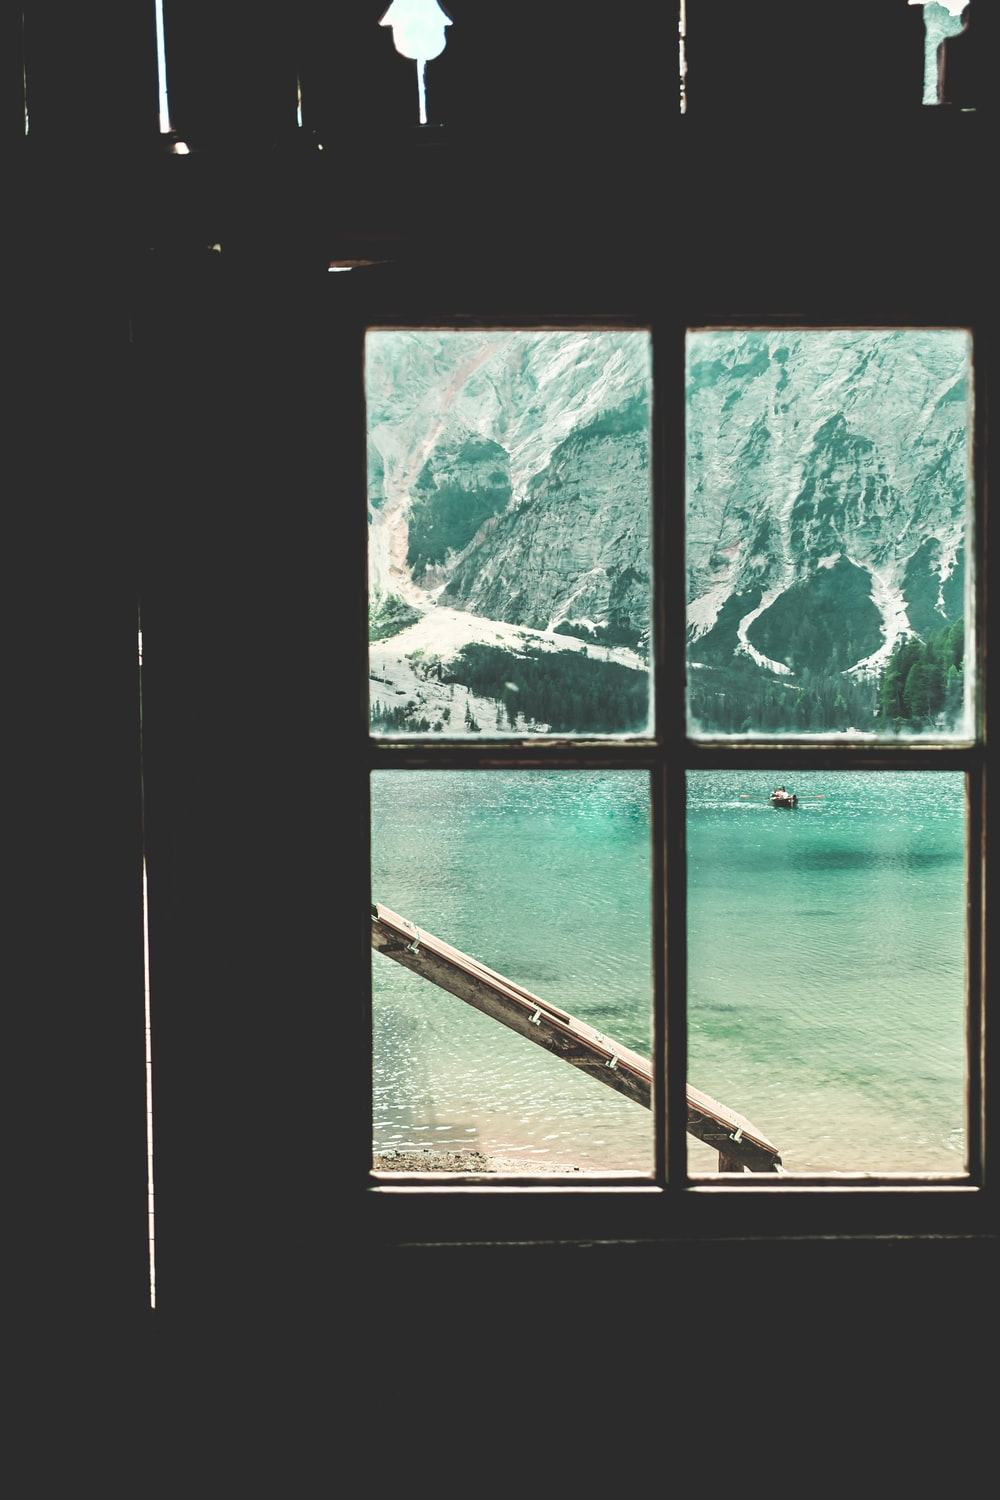 window-view of boat on water